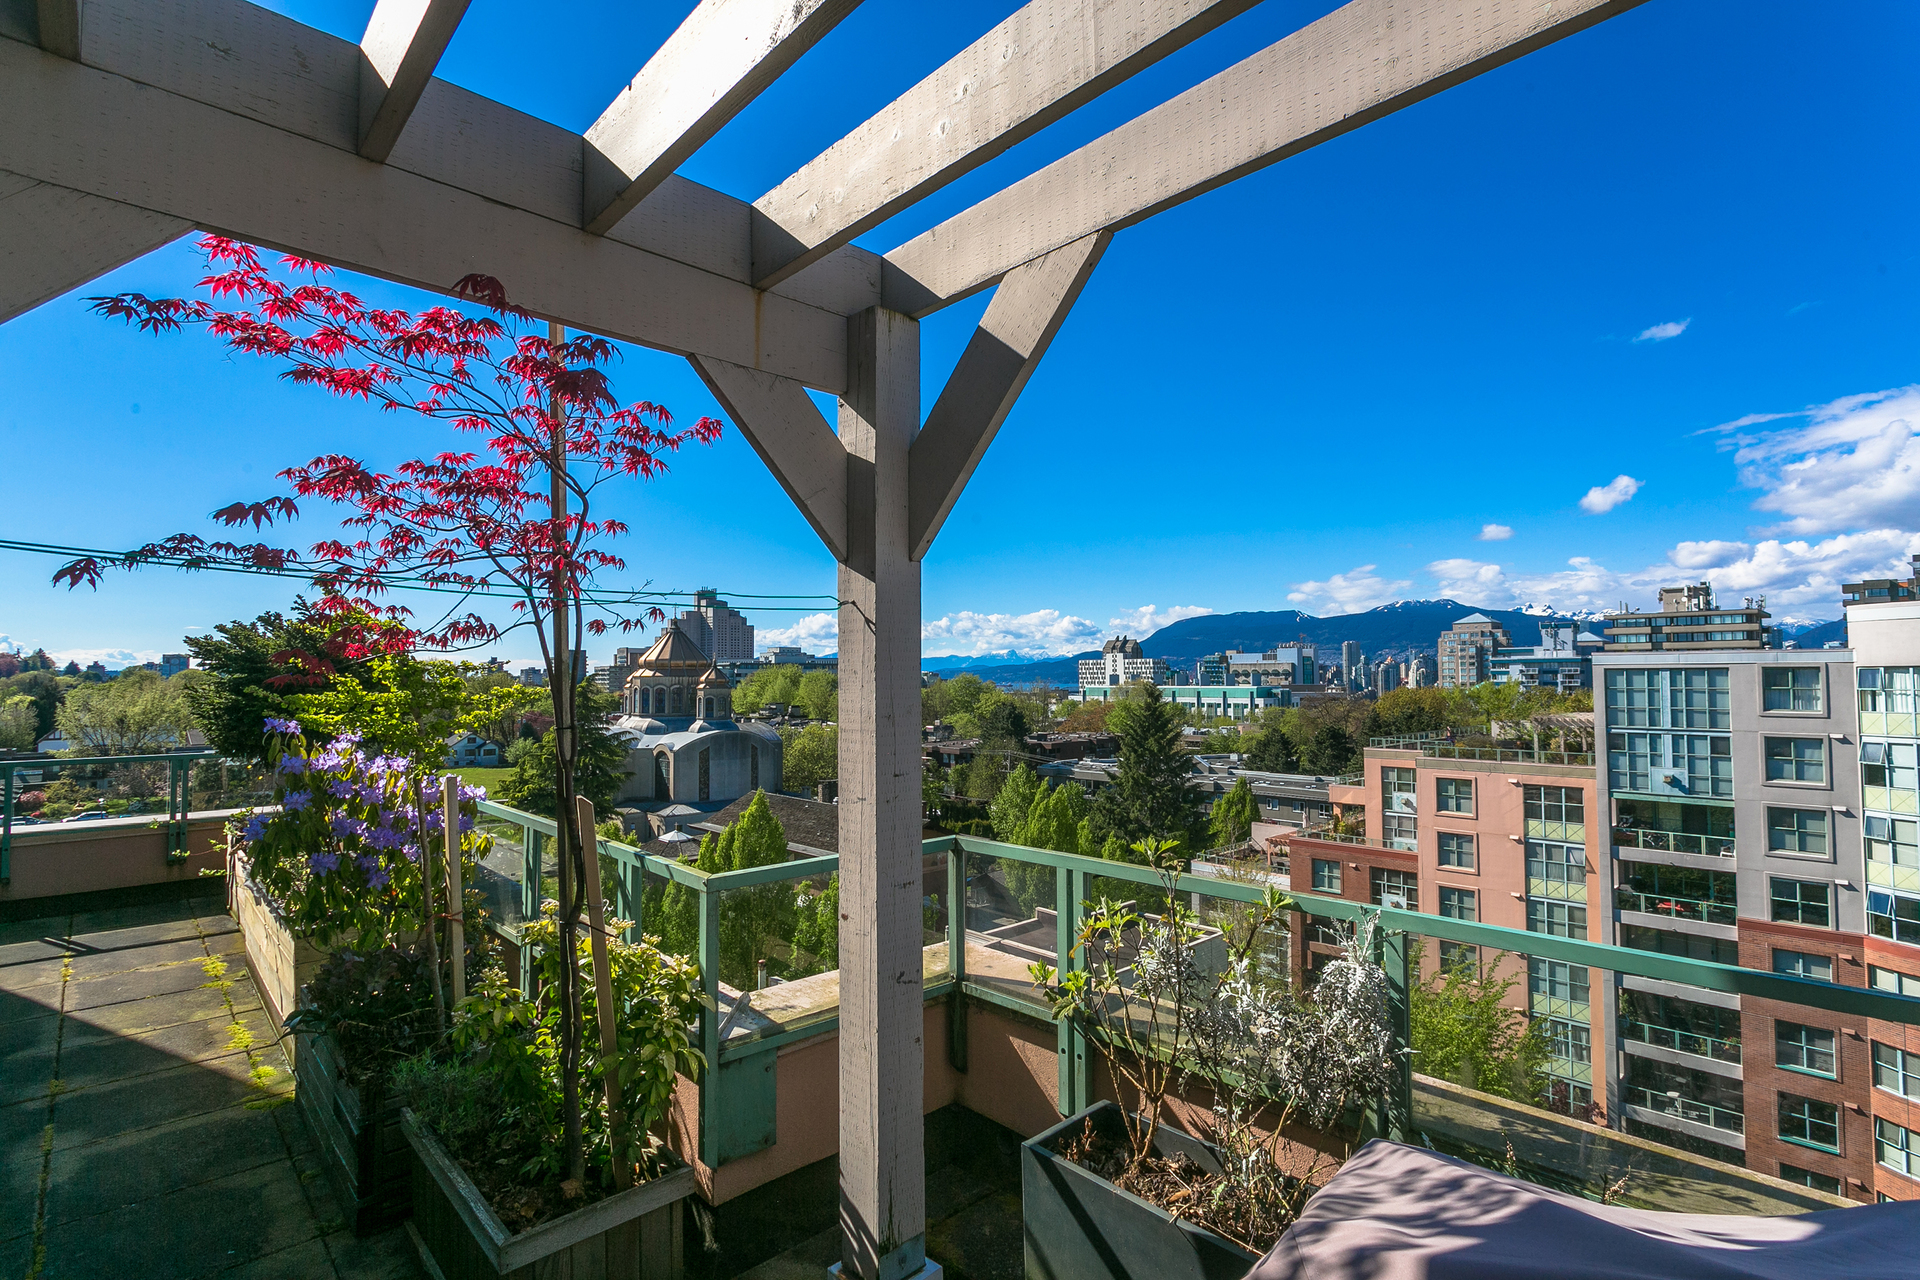 20170506-1j6a5258 at PH - 3055 Cambie Street, Cambie, Vancouver West